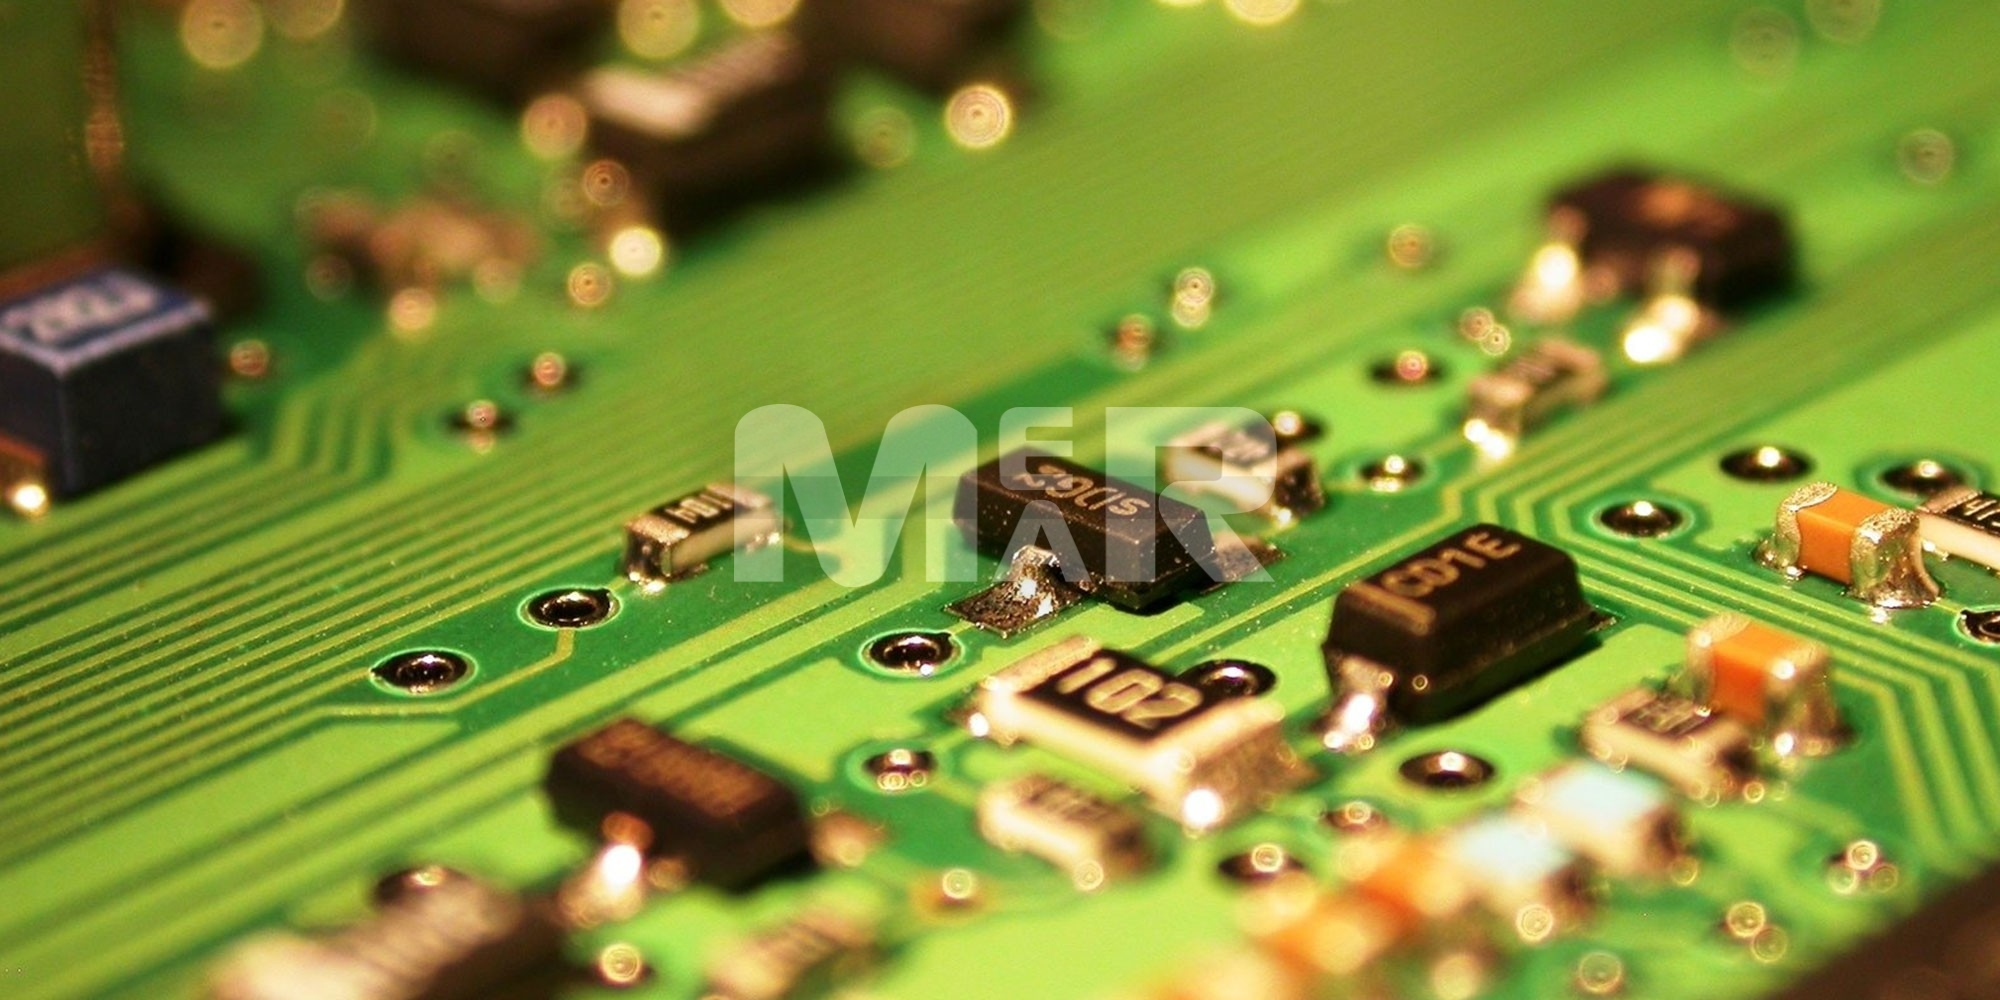 California Pcb Assembly And Manufacturing Blog Mermar Electronics Circuit Board Electronicspcb Parts Functions Buy High Speed